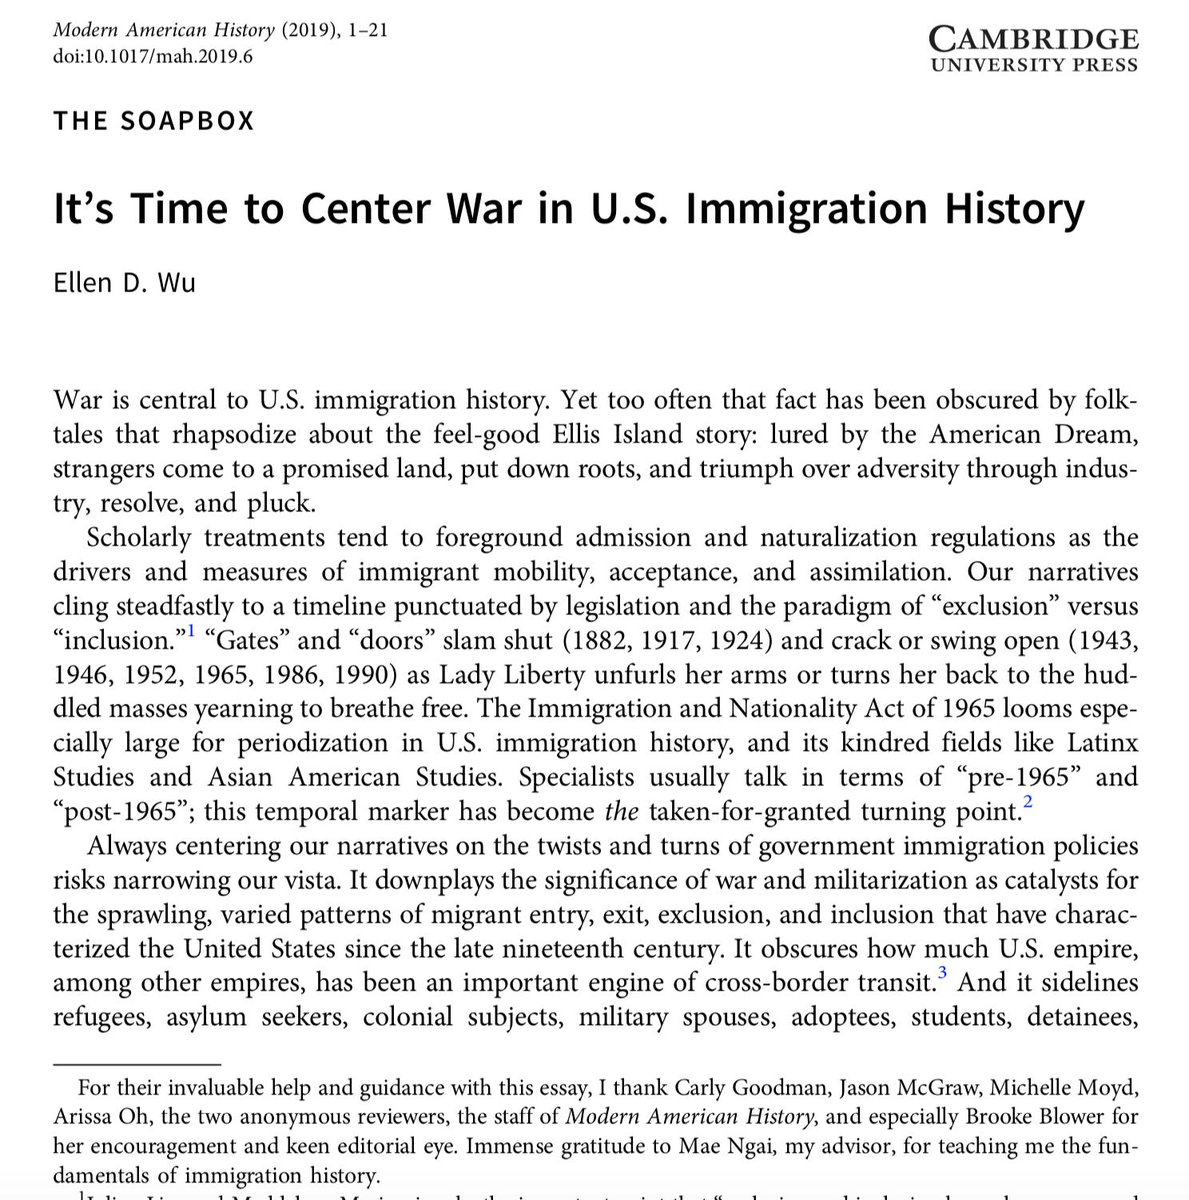 Friends: essay on #war + US #immigration history now up @MAH. Took this on to become better student/teacher of this urgent subject. Grateful 2 all whose work made this possible. Thx esp 2 Brooke Blower 4 her rigorous & supportive editing https://doi.org/10.1017/mah.2019.6 … #twitterstorians